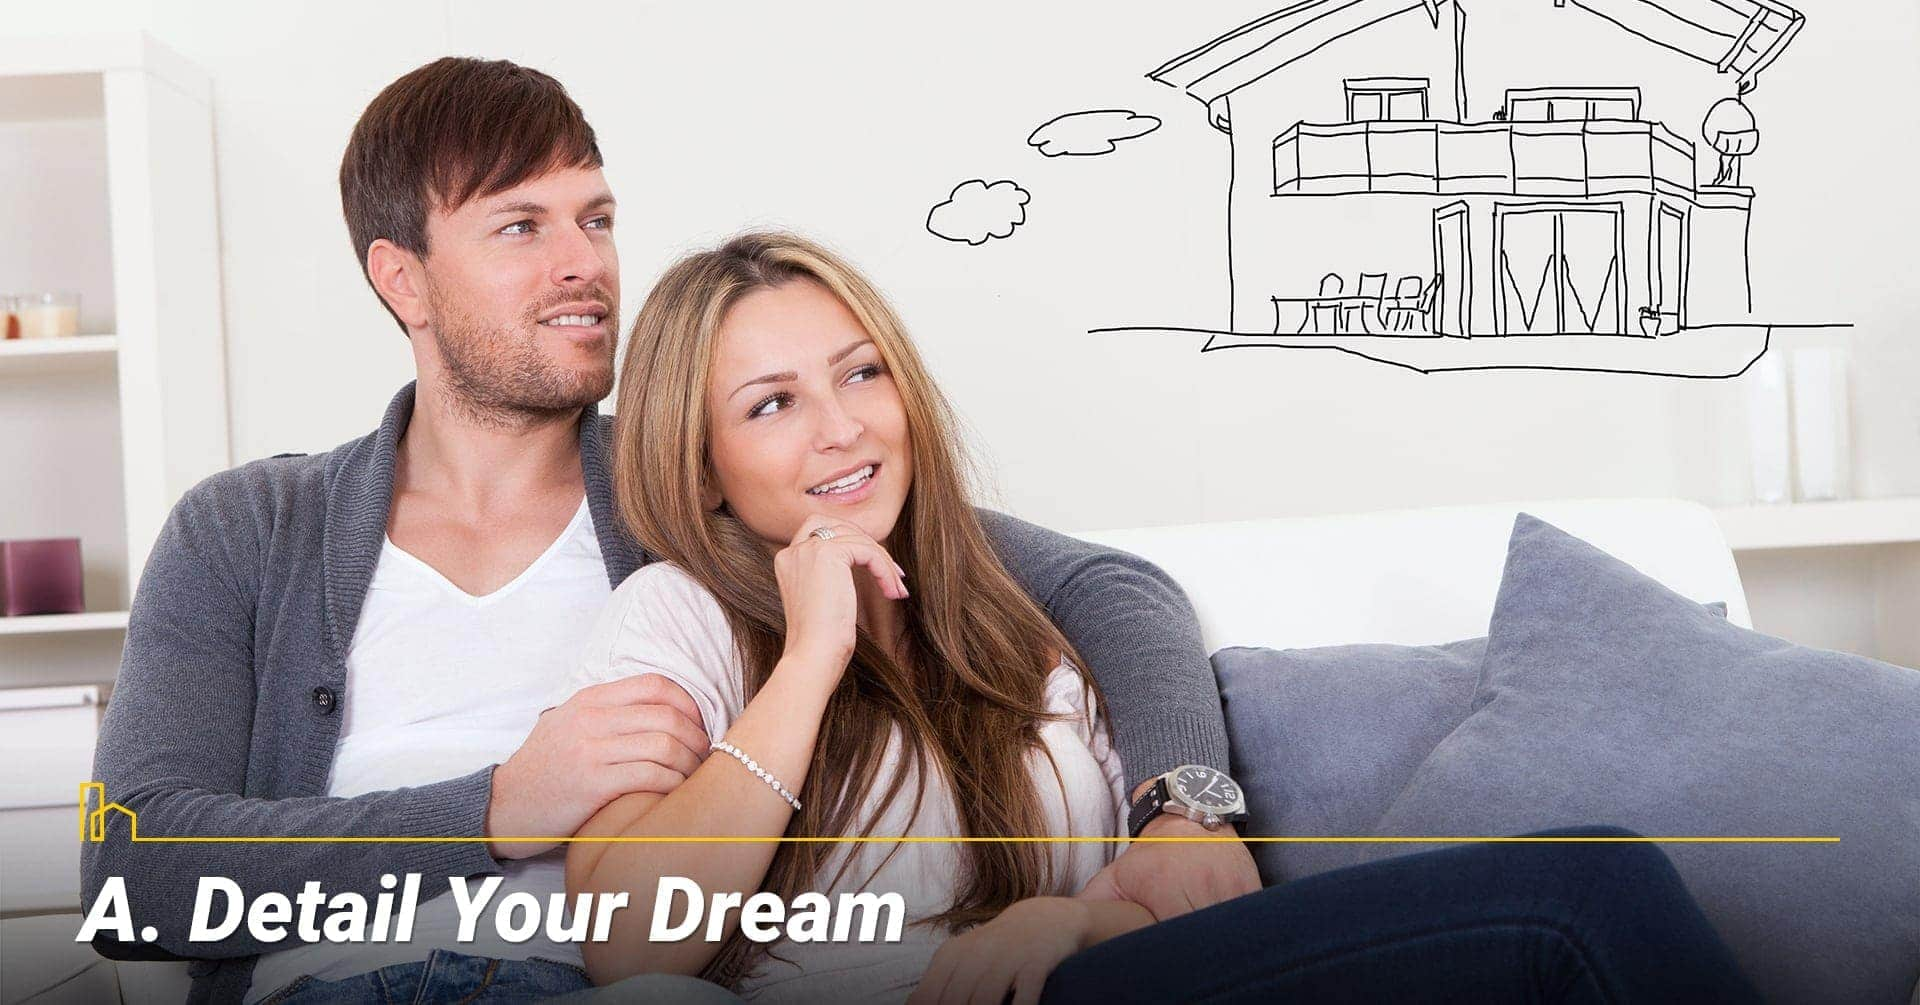 Detail Your Dream, know what you want in a home